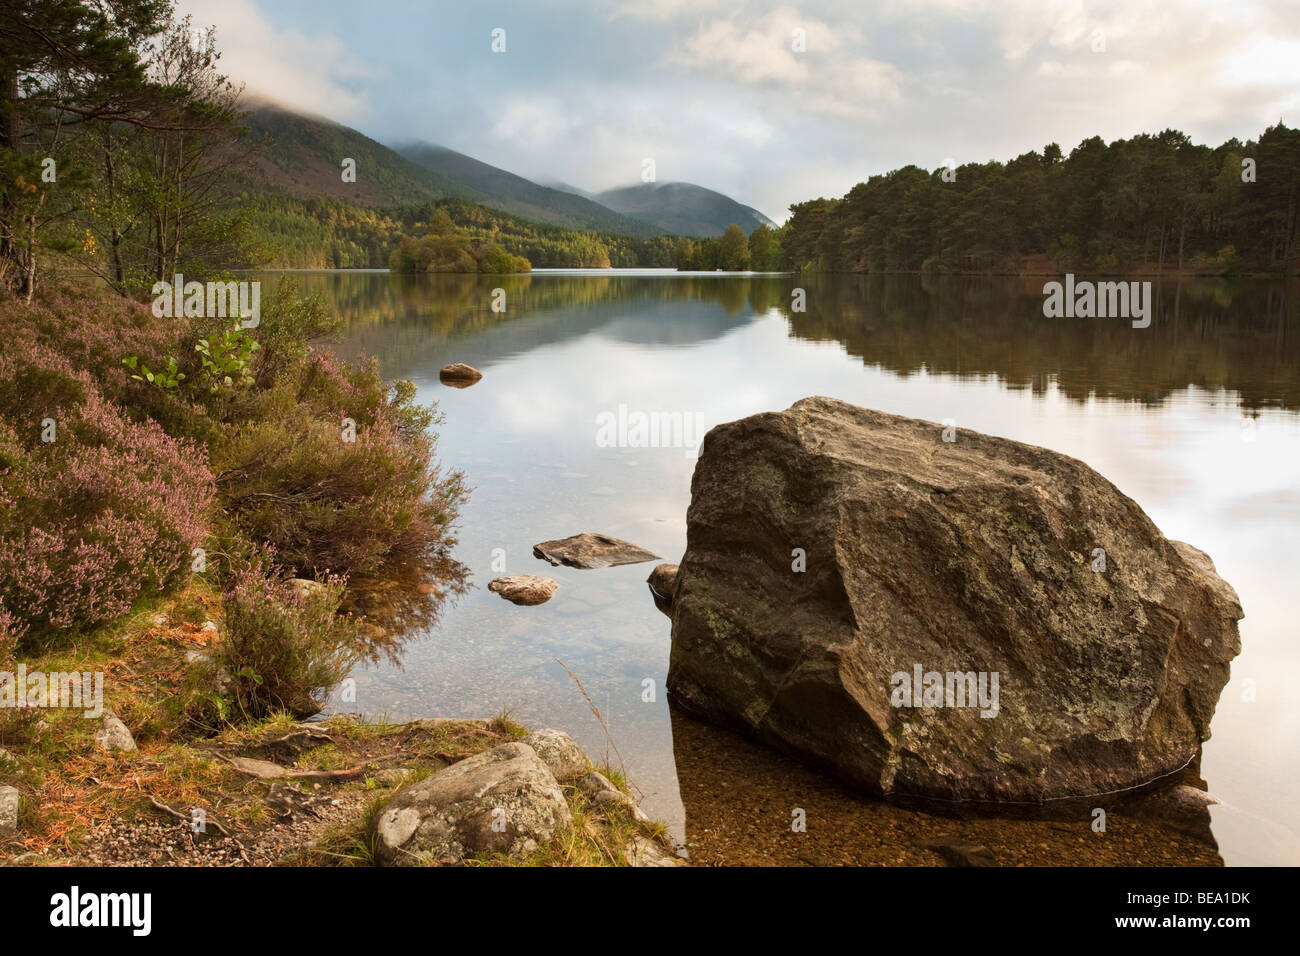 Sunset over Loch an Eilein and castle island, Cairngorms National Park, Scottish Highlands, Uk - Stock Image